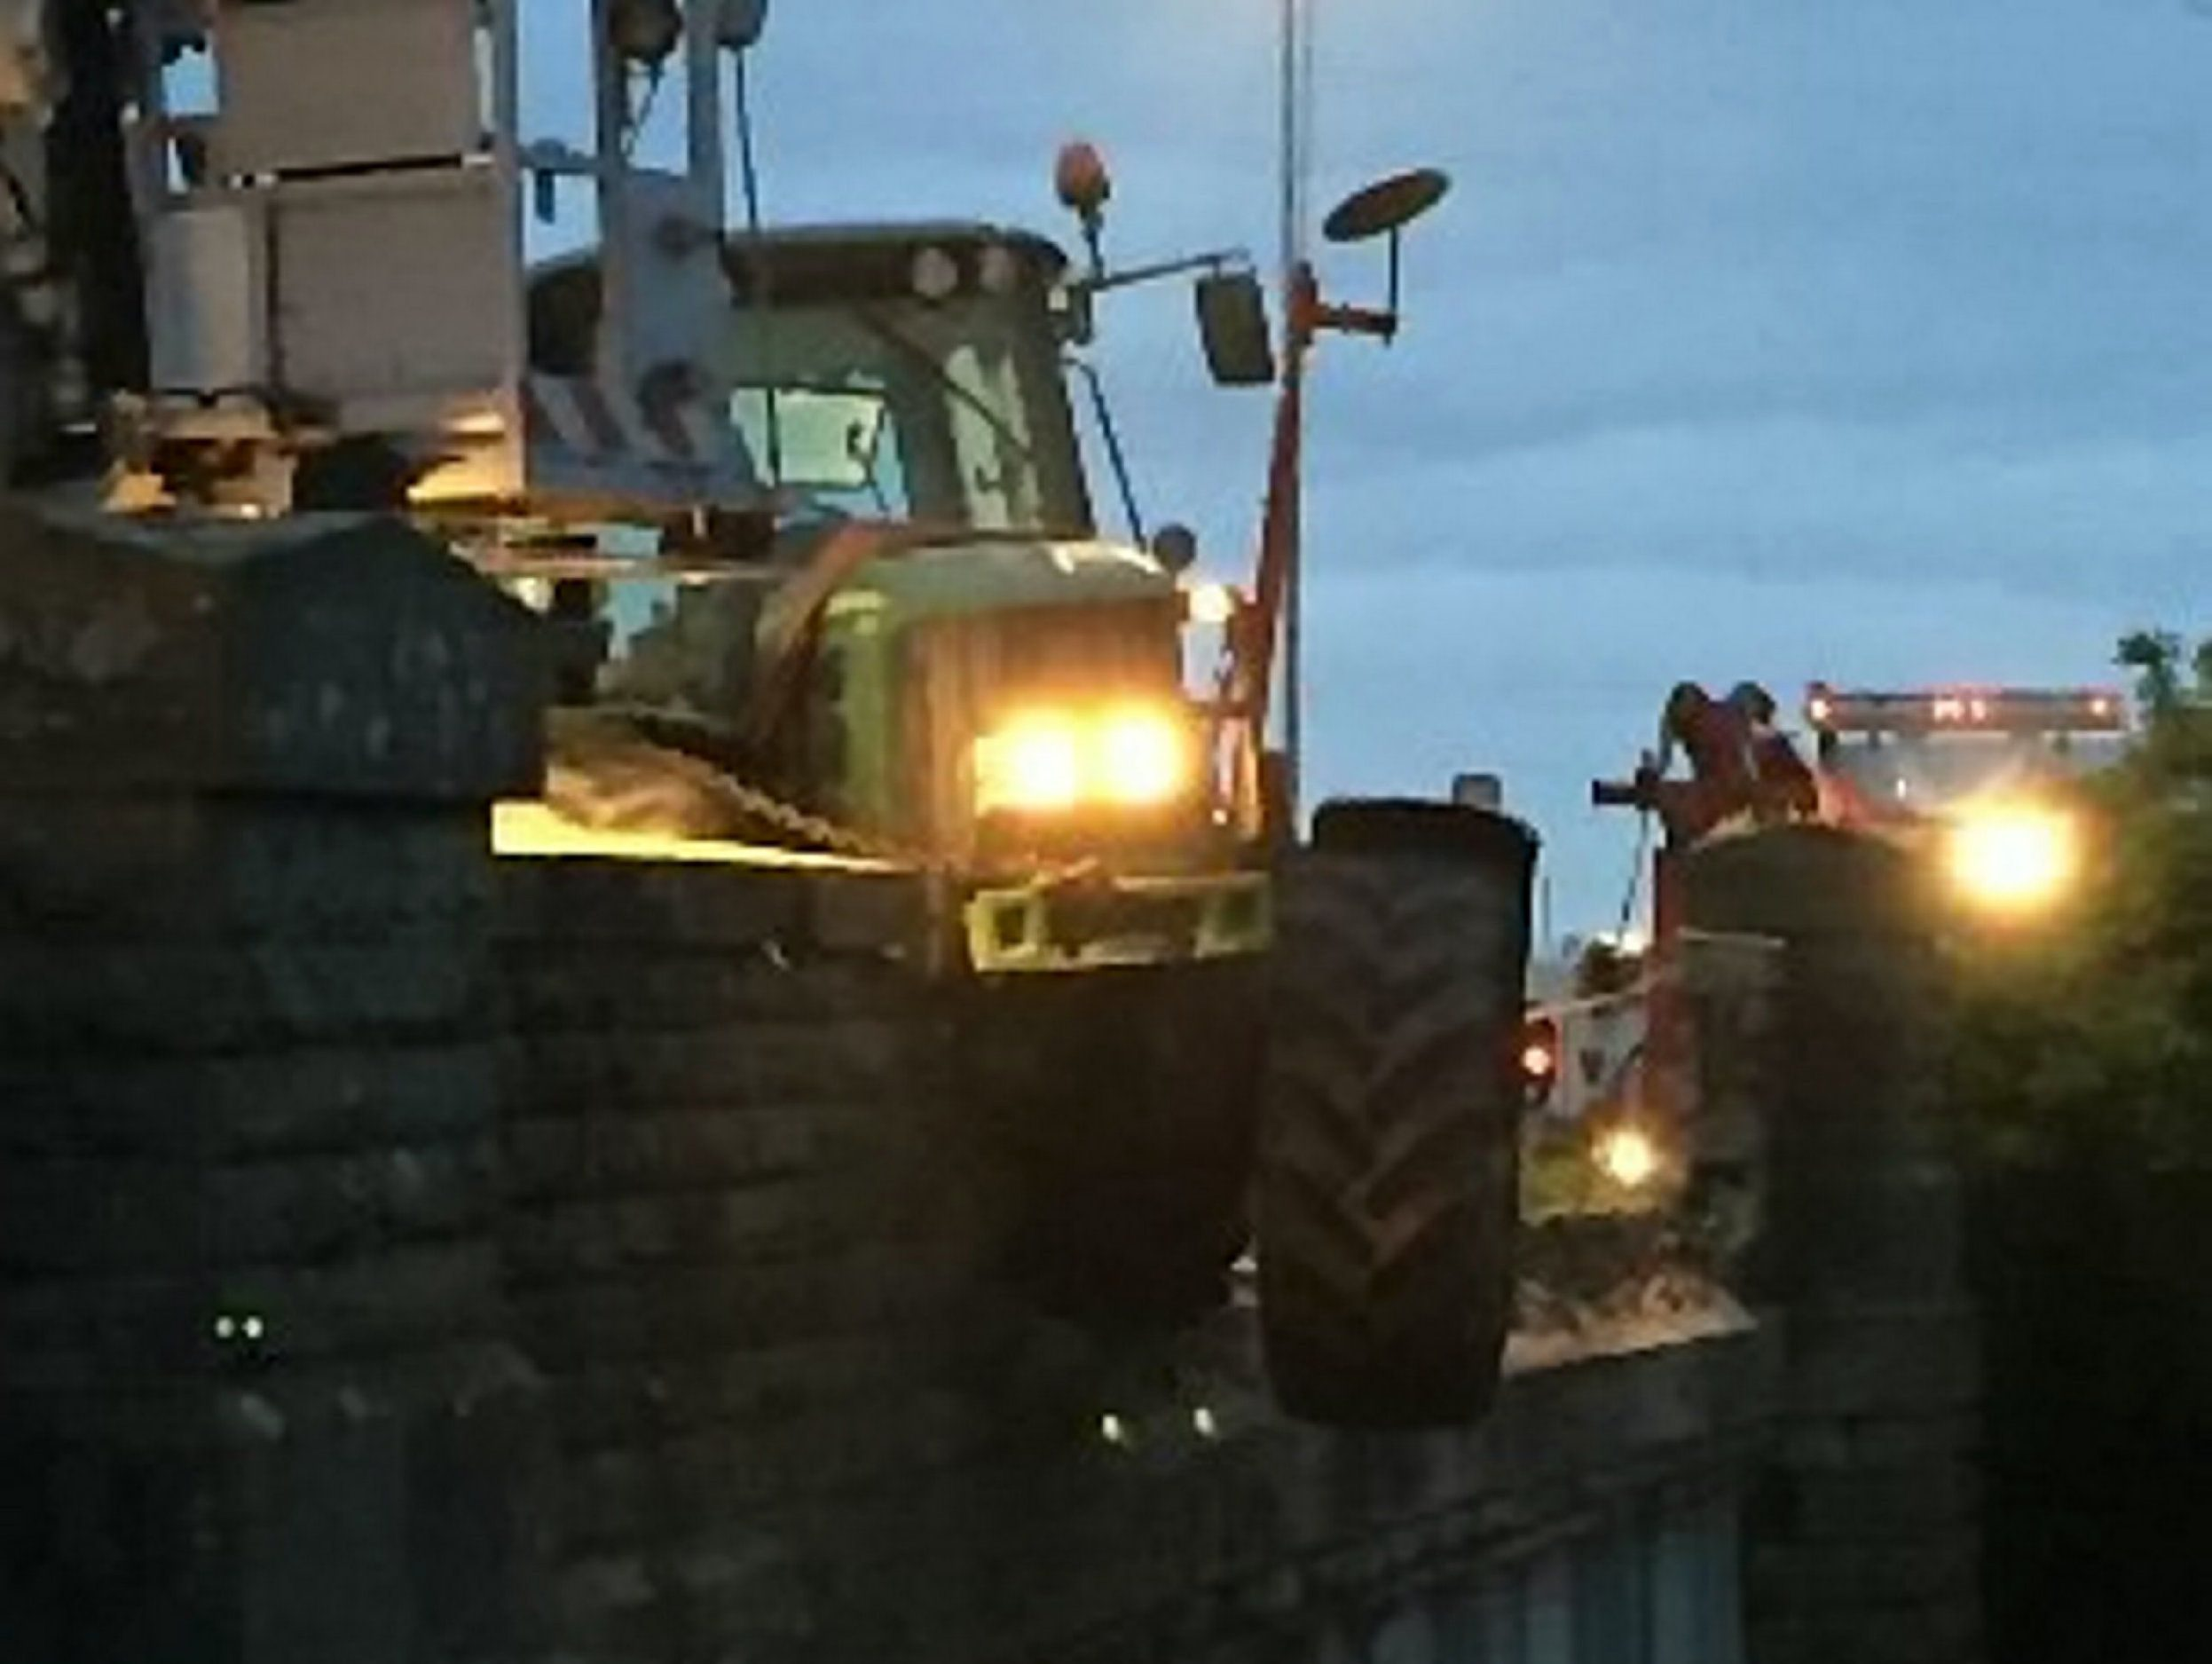 A stolen John Deere tractor crashed on a Victorian bridge over a railway at Abbotswood, near Worcester. See Newsteam story NTITRACTOR; Police are hunting a thief who caused a train to crash after he smashed a stolen tractor into a railway bridge - while hitting a top speed of 7mph. Dramatic pictures show the nine-tonne John Deere tractor hanging precariously over the edge of the bridge. Despite having a top speed of just 7mph, the impact of the crash sent tonnes of rubble onto the track just moments before a train passed packed with passengers. Incredibly, despite the Cardiff to Birmingham New Street train hitting the rubble, it was not de-railed and no one was injured. The drama unfolded at 9.30pm on Friday (13/5) when the tractor careered into a Victorian road bridge at Abbotswood, near Worcester.